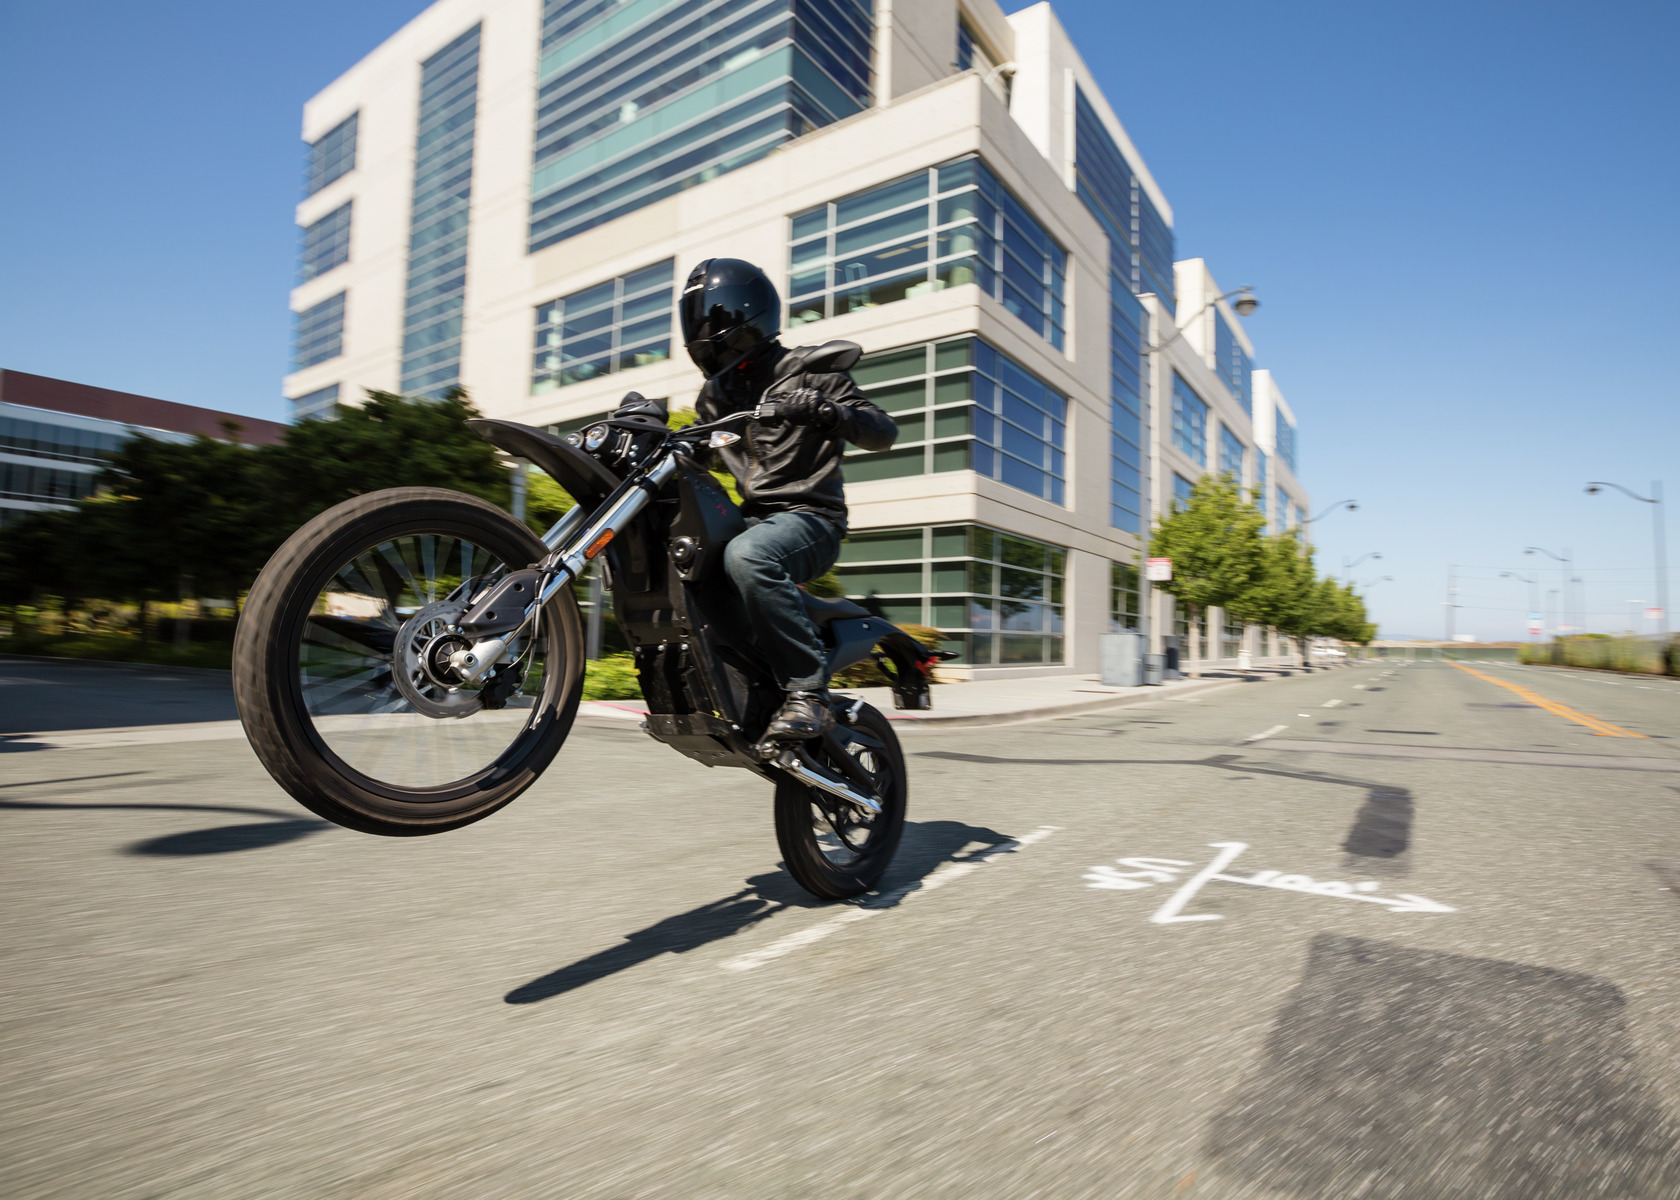 2016 Zero FX Electric Motorcycle: